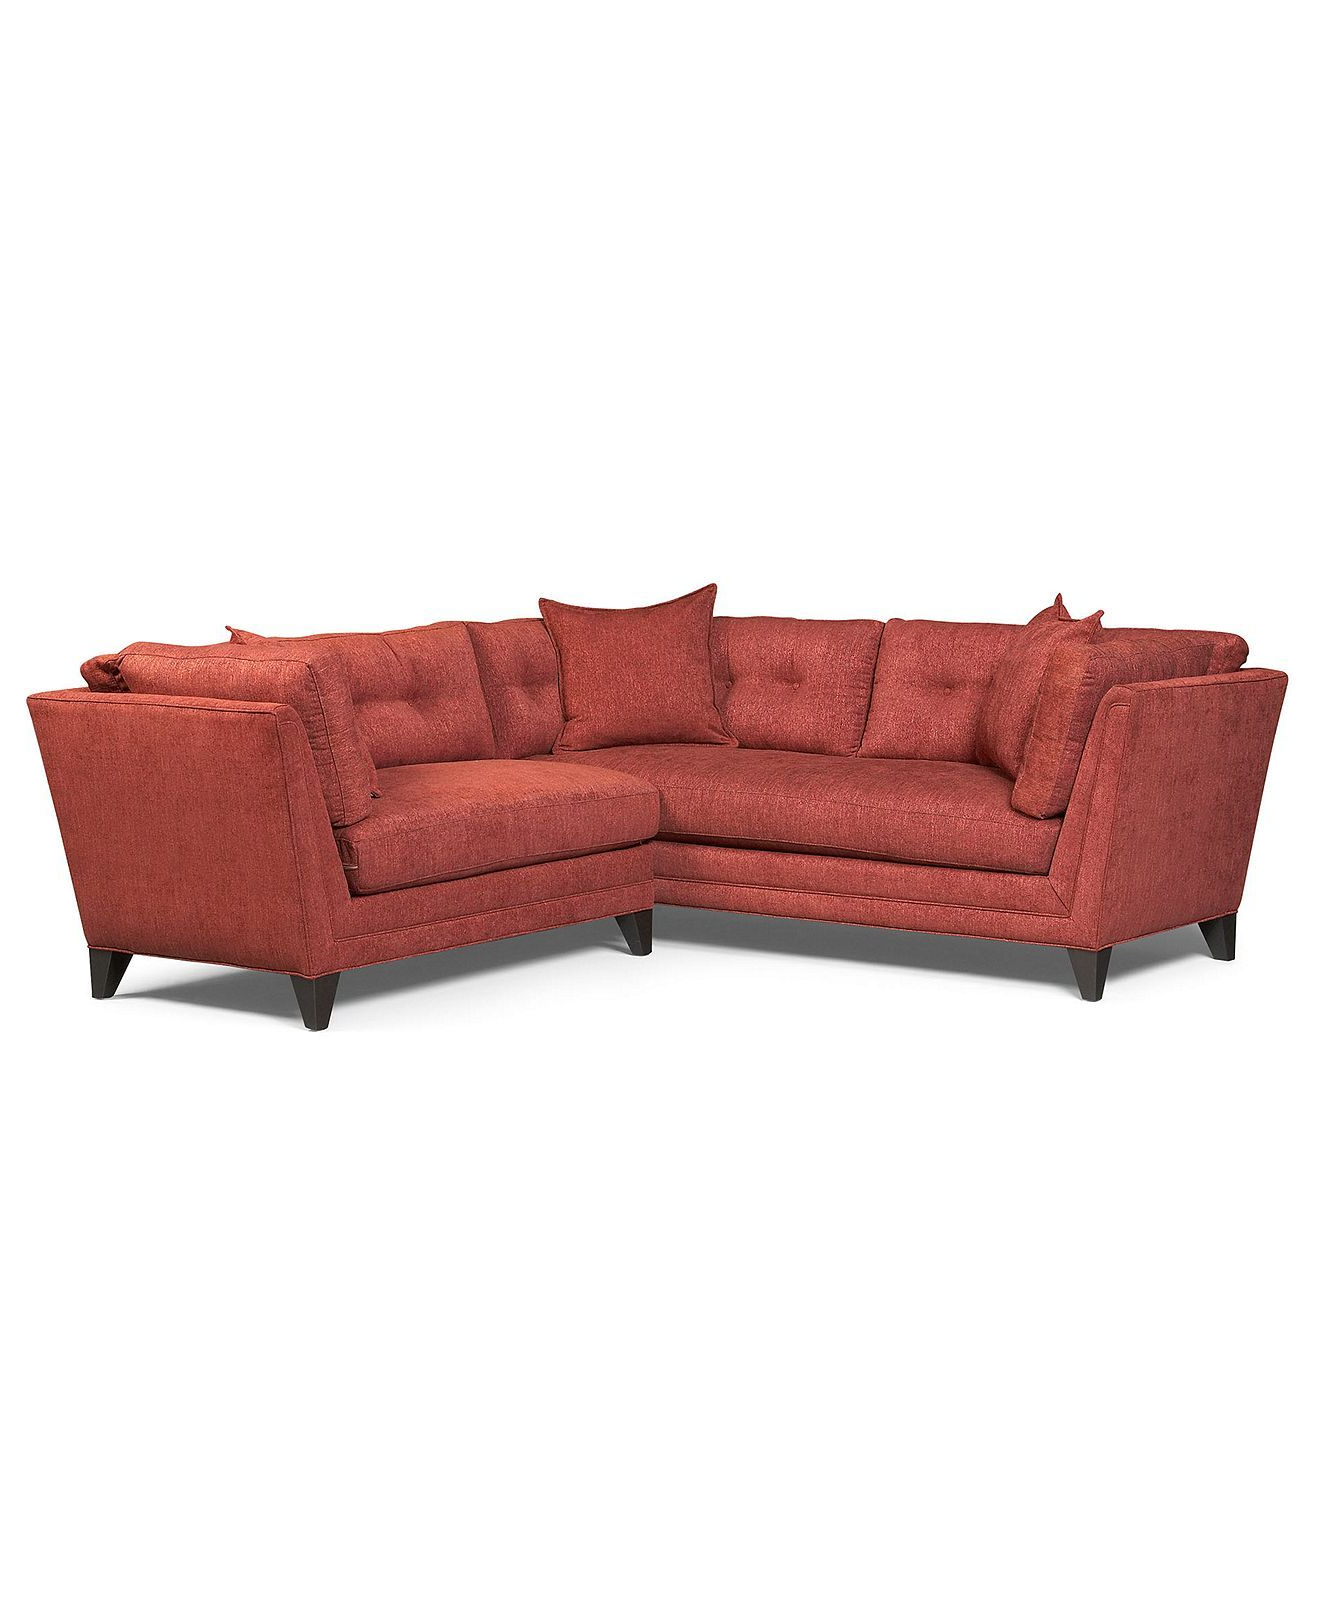 Irene Fabric Sectional Sofa, 2 Piece (1 Arm Sofa And 1 Arm Inside Current 2Pc Maddox Left Arm Facing Sectional Sofas With Chaise Brown (View 16 of 25)